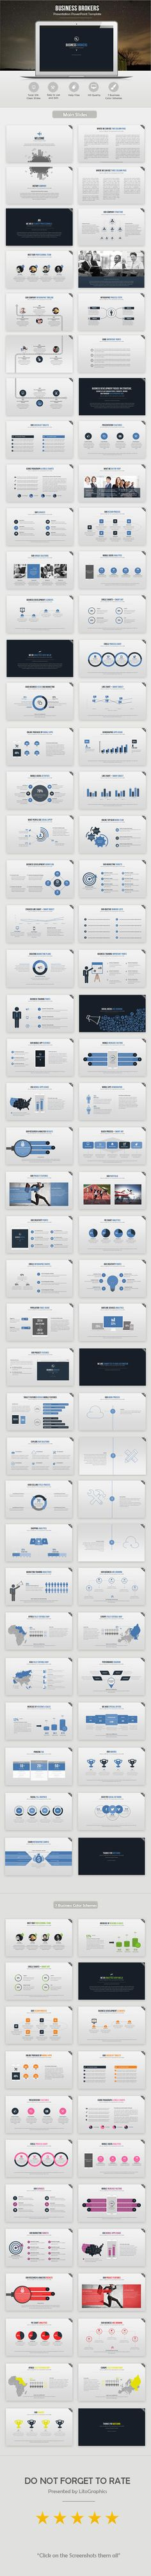 Business Brokers Powerpoint Template. This presentation template is so versatile that it can be used in many different businesses.